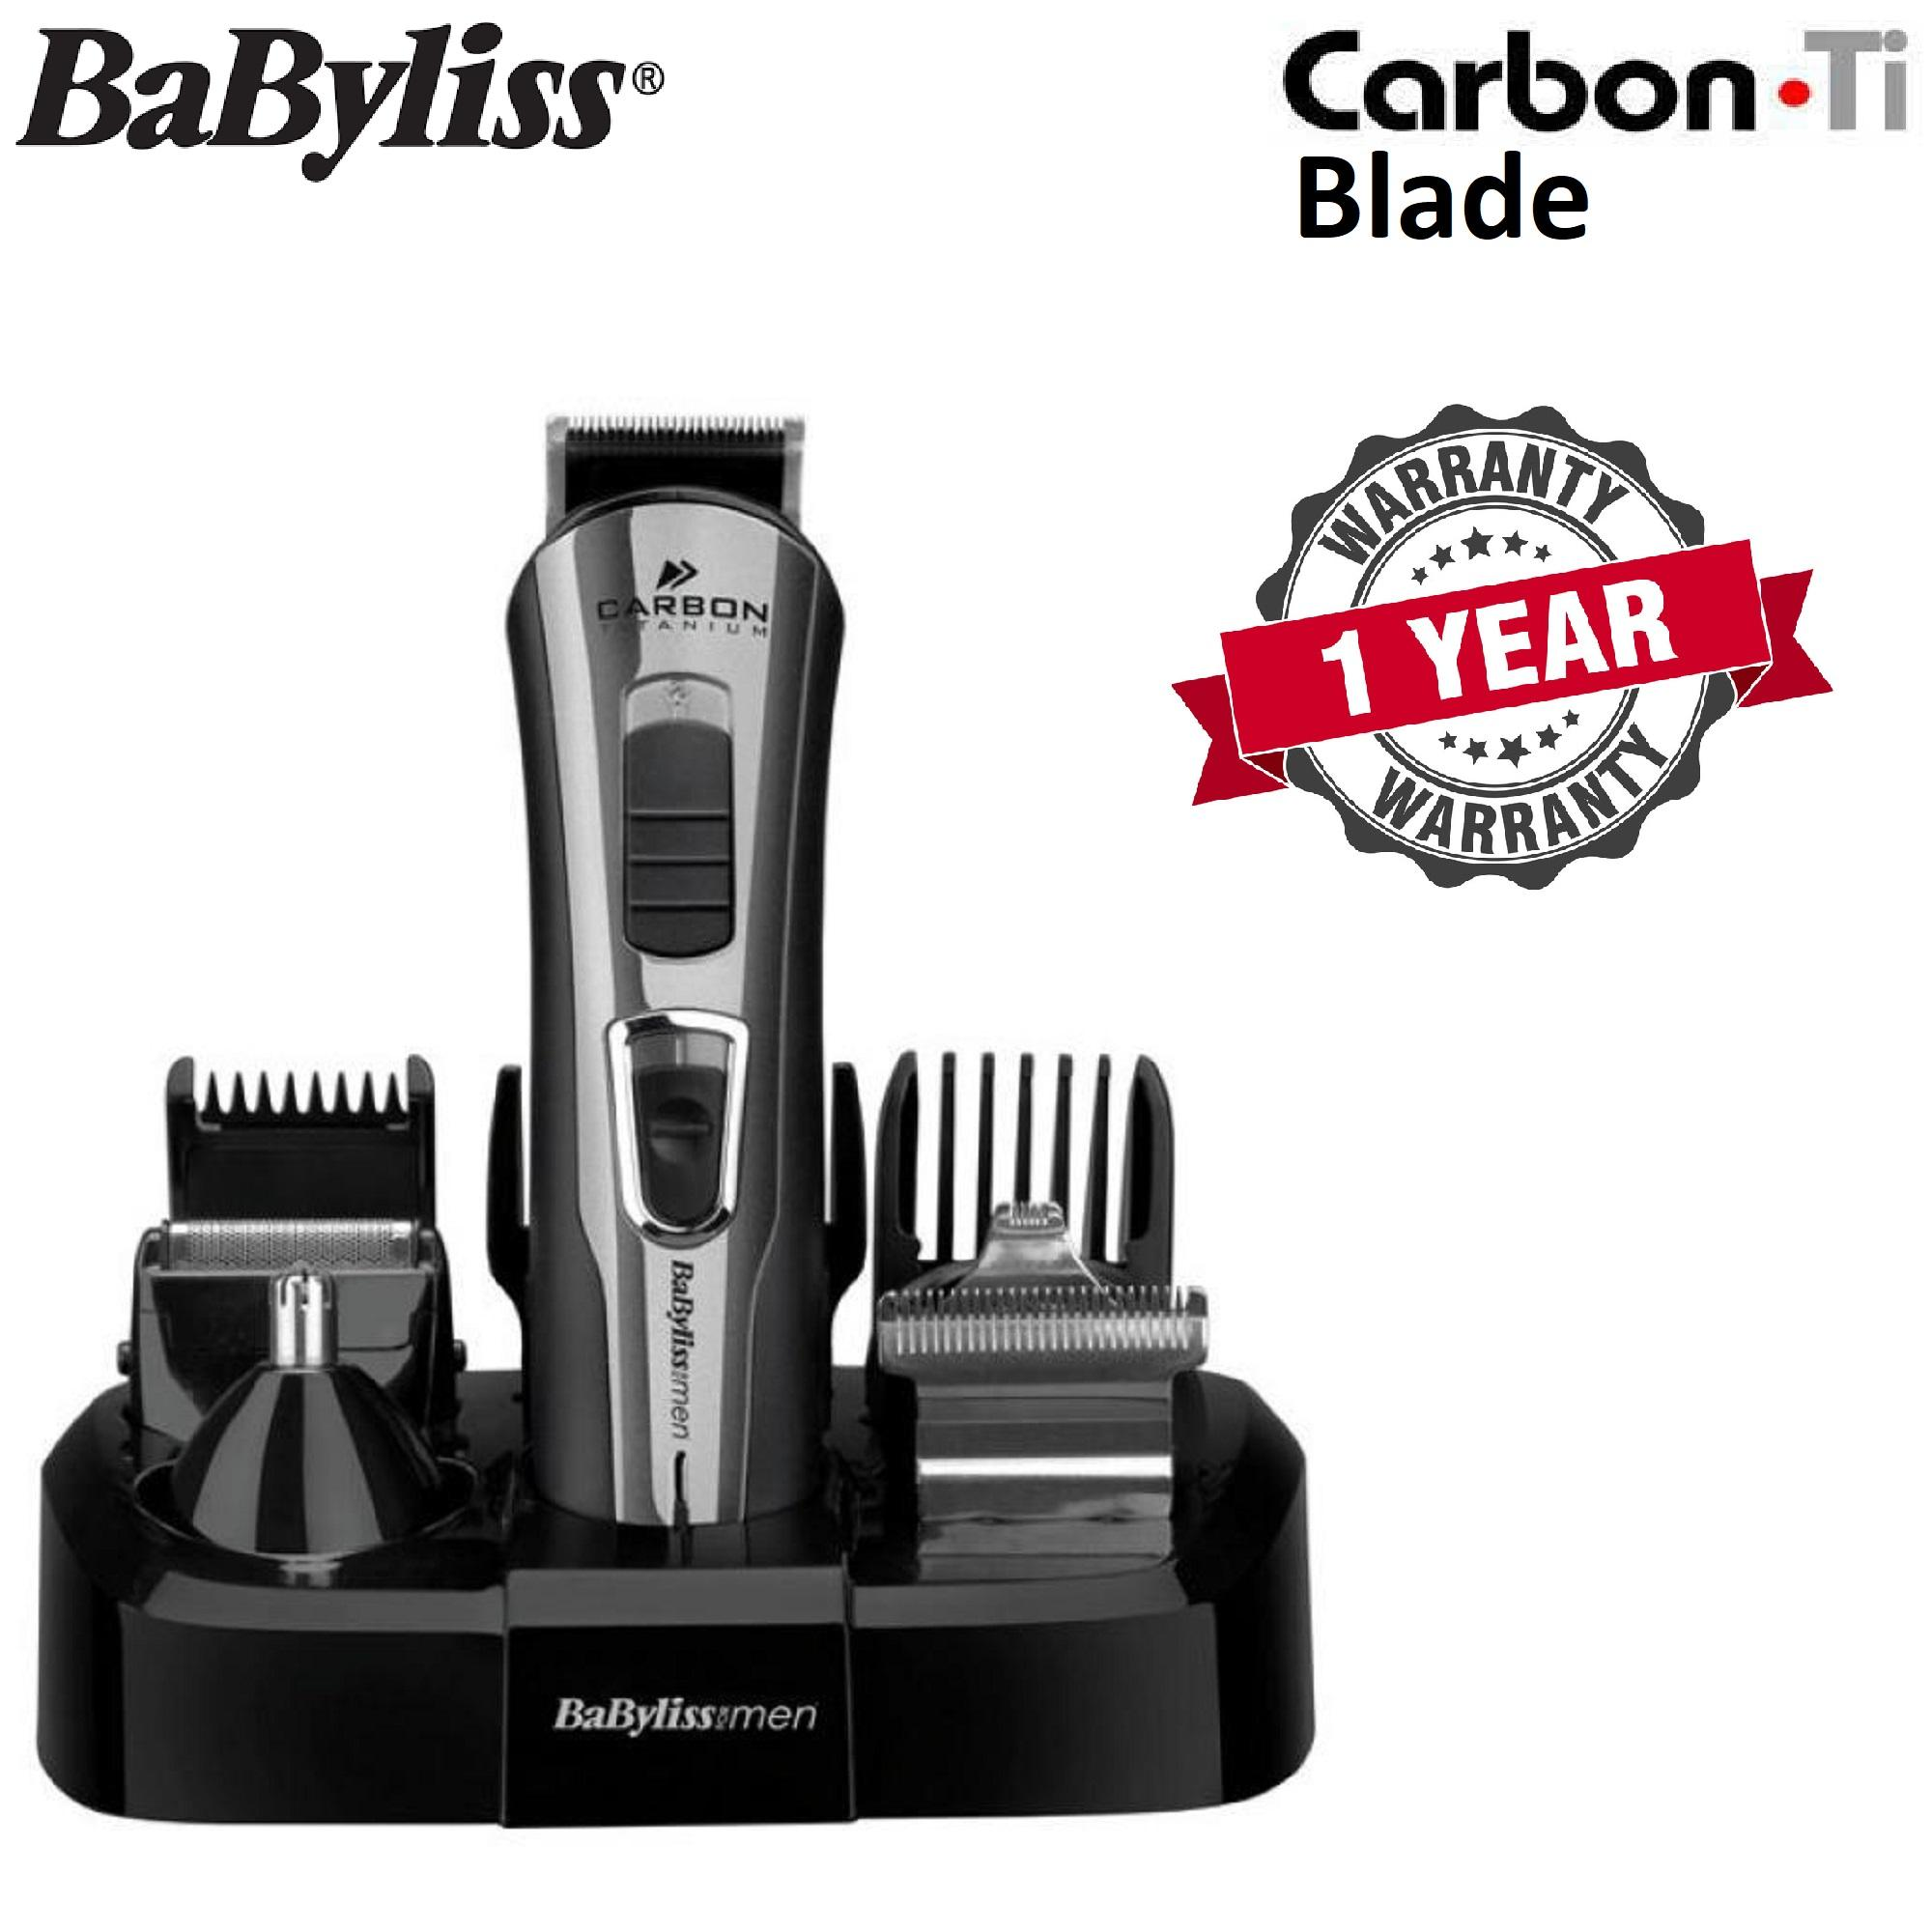 BaByliss 7425CU 10-in-1 Carbon Titanium Face Body Grooming Kit ( 1 YEAR 3b3a90062b5